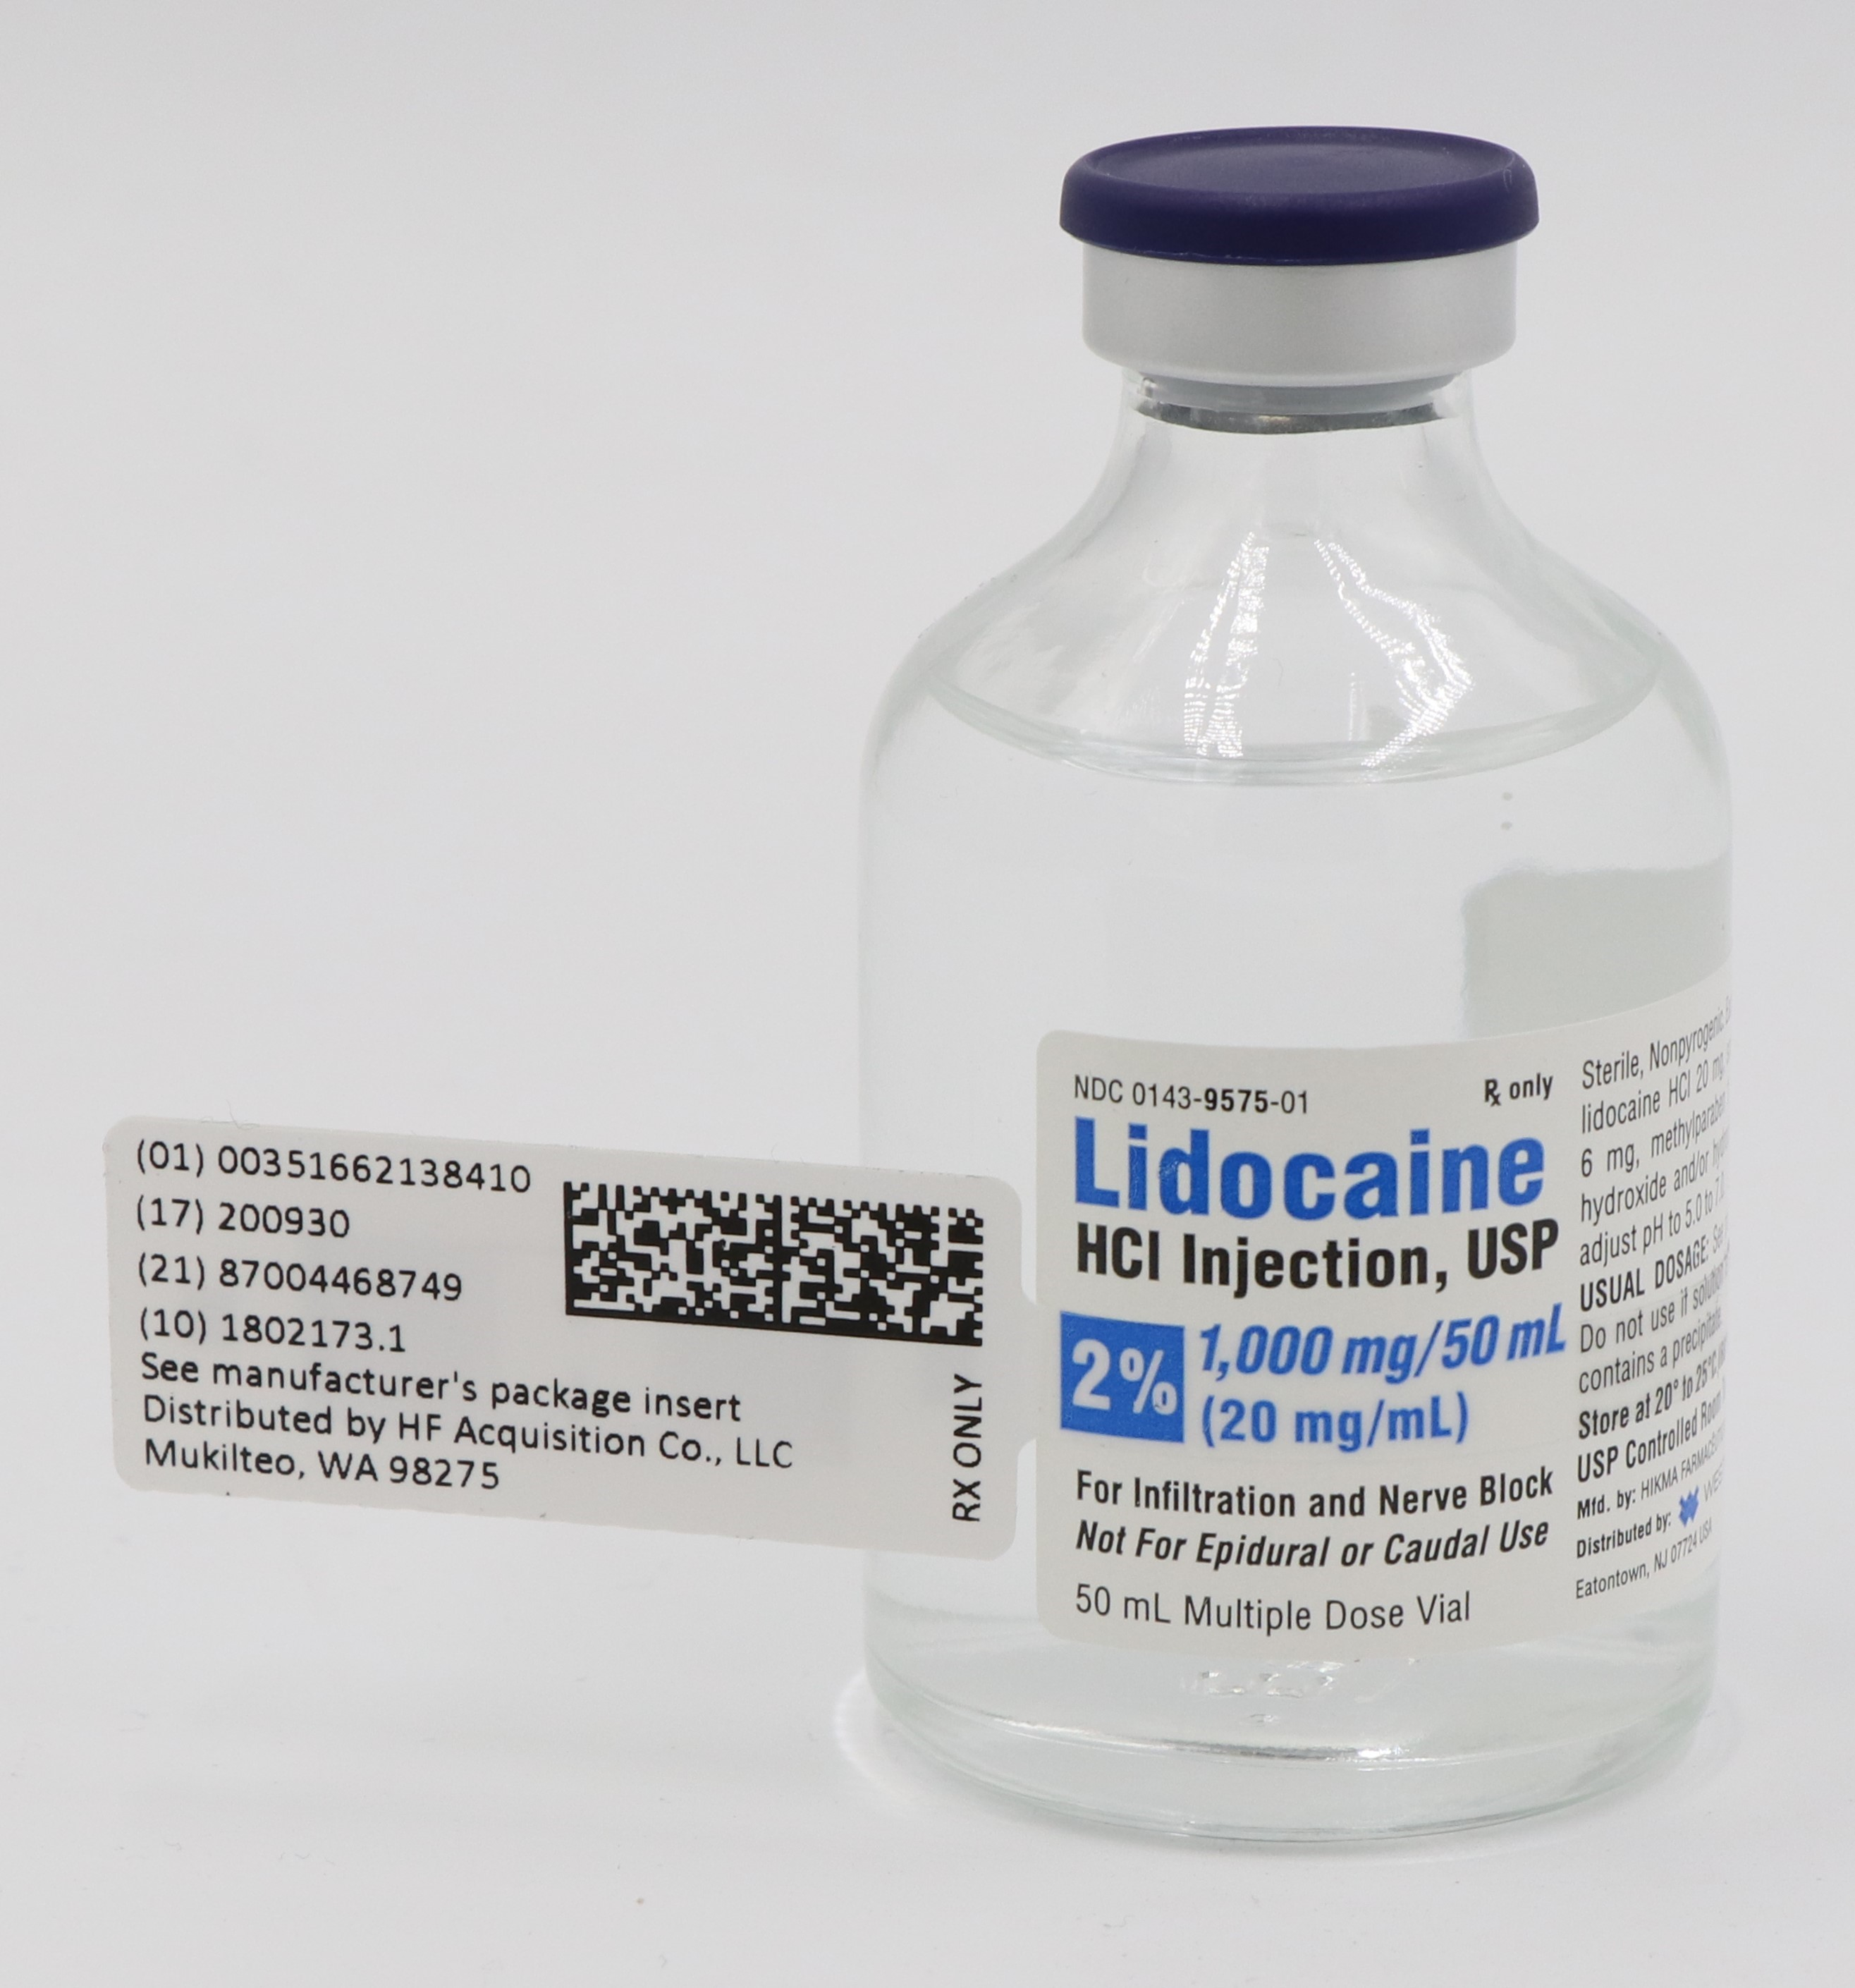 SERIALIZED LABELING